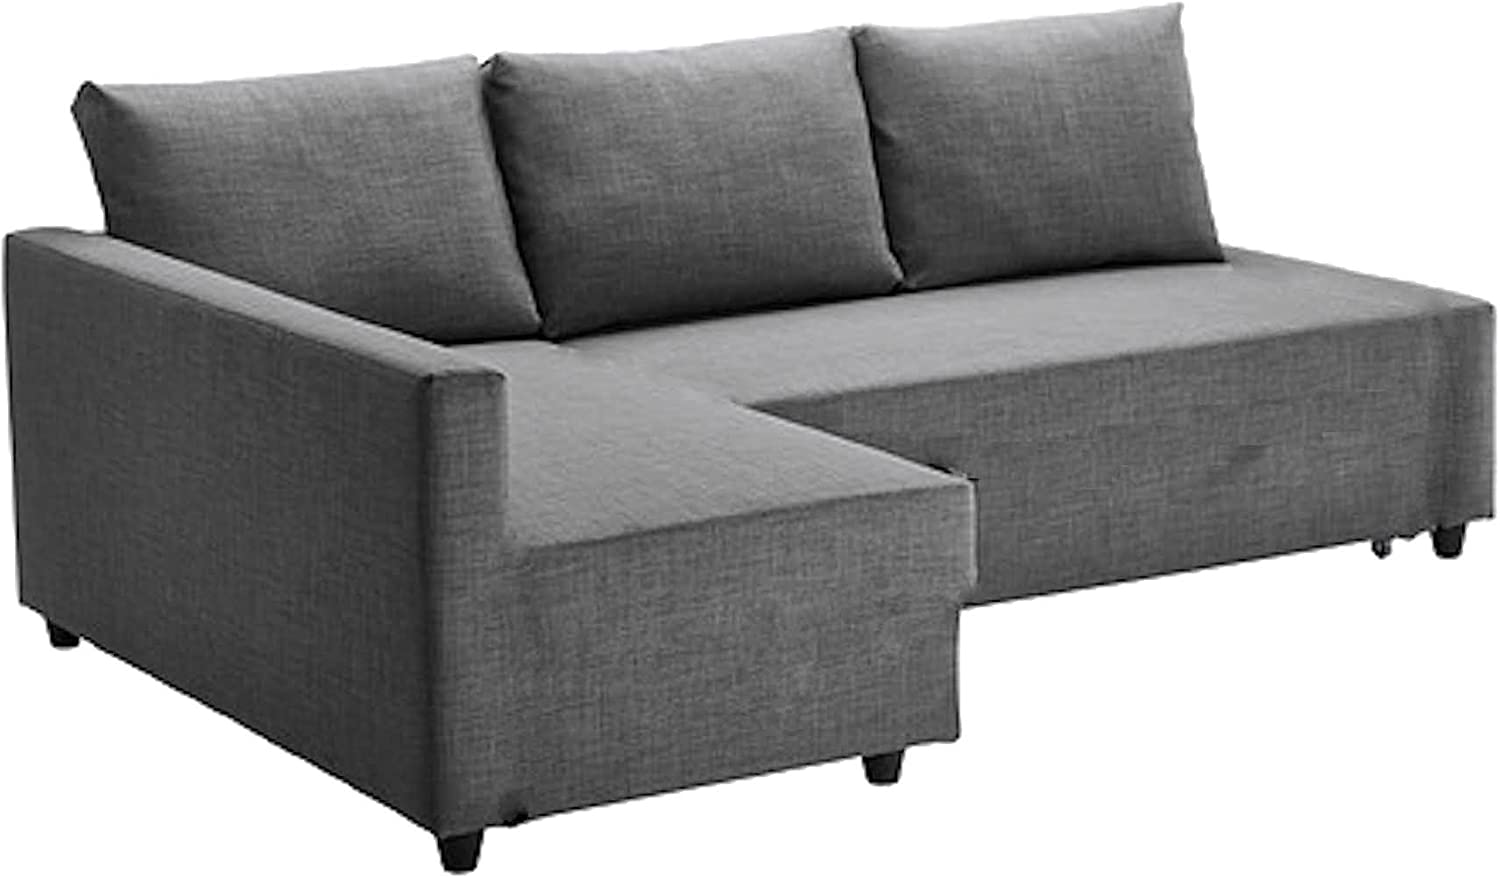 The Friheten Sleeper Thick Cotton Sofa Cover Replacement is Custom Made Compatible for IKEA Friheten Sofa Bed, Or Corner, Sectional Slipcover. Cover Only! (Light Gray Longer Right CoLigh)